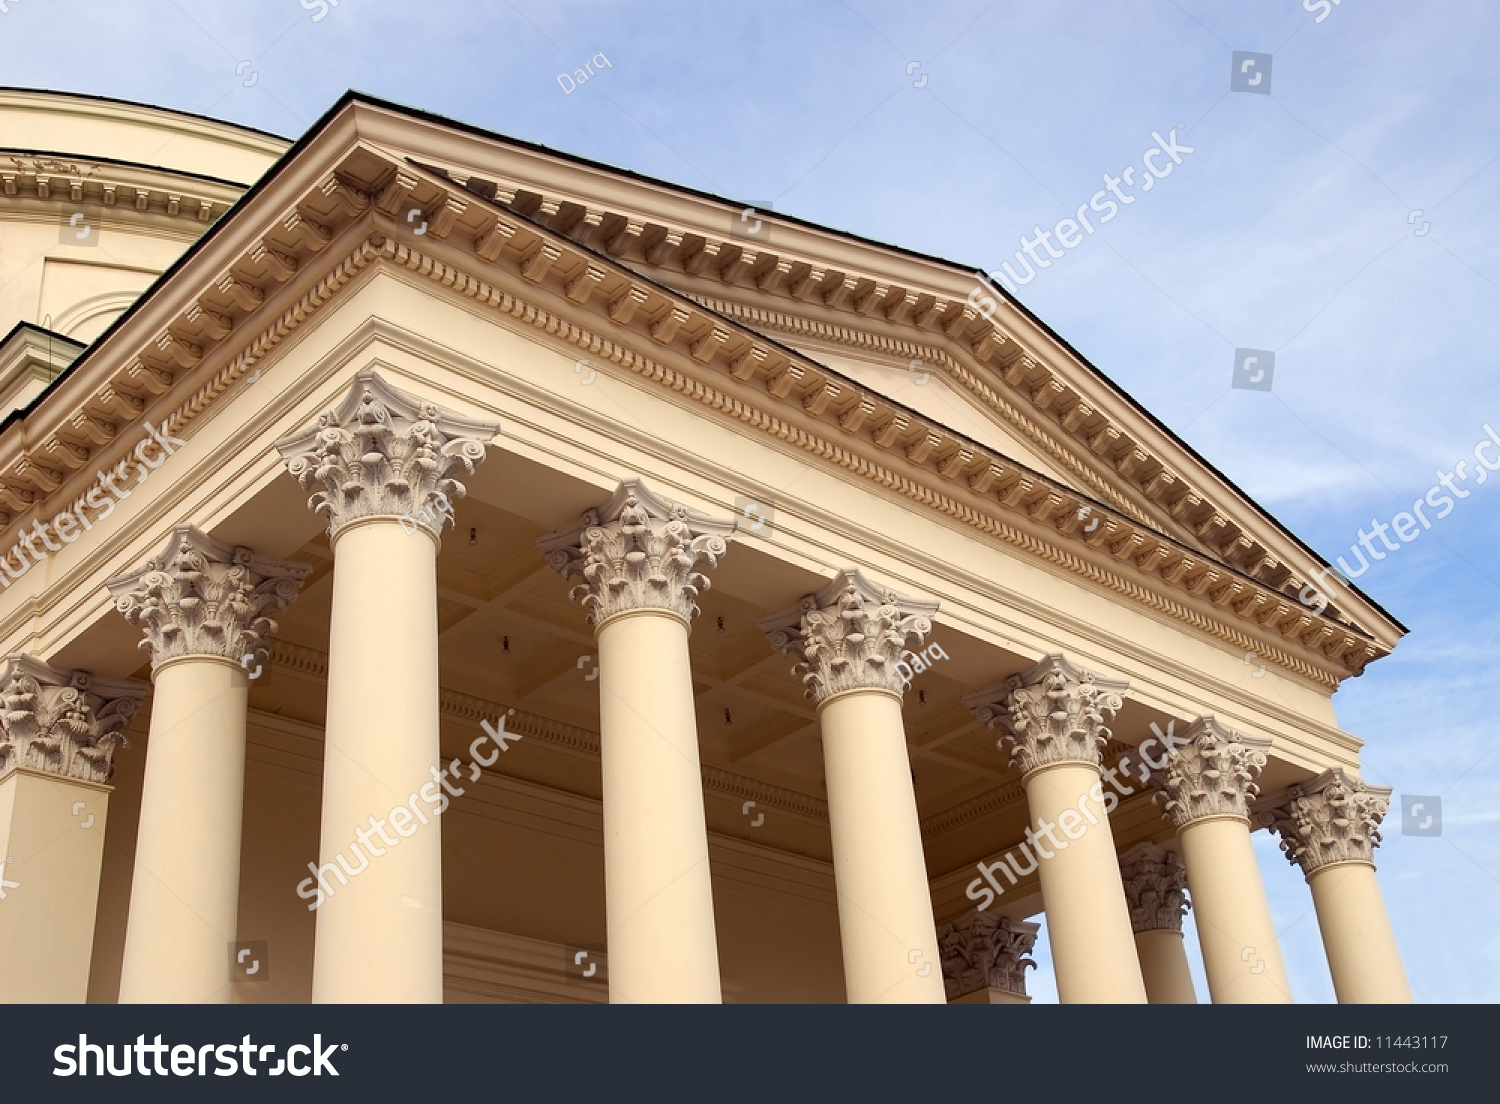 Neoclassical Architecture Style From 1812 Catholic Church In Warsaw Poland